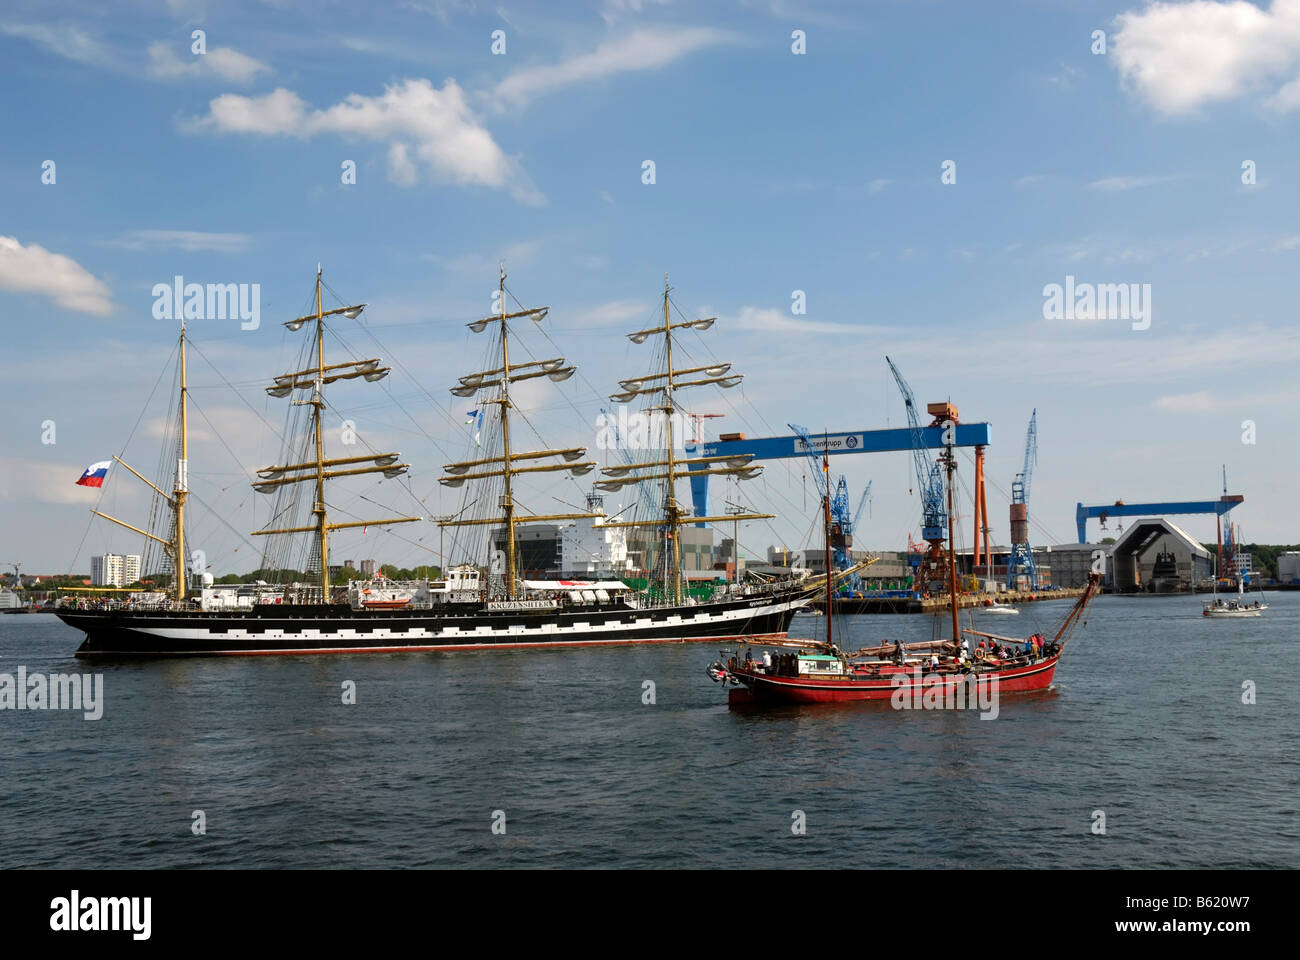 Russian Tall Ship, Kruzenshtern, and other tall ships in front of the crane of the Howaldtswerke-Deutsche Werft, Stock Photo